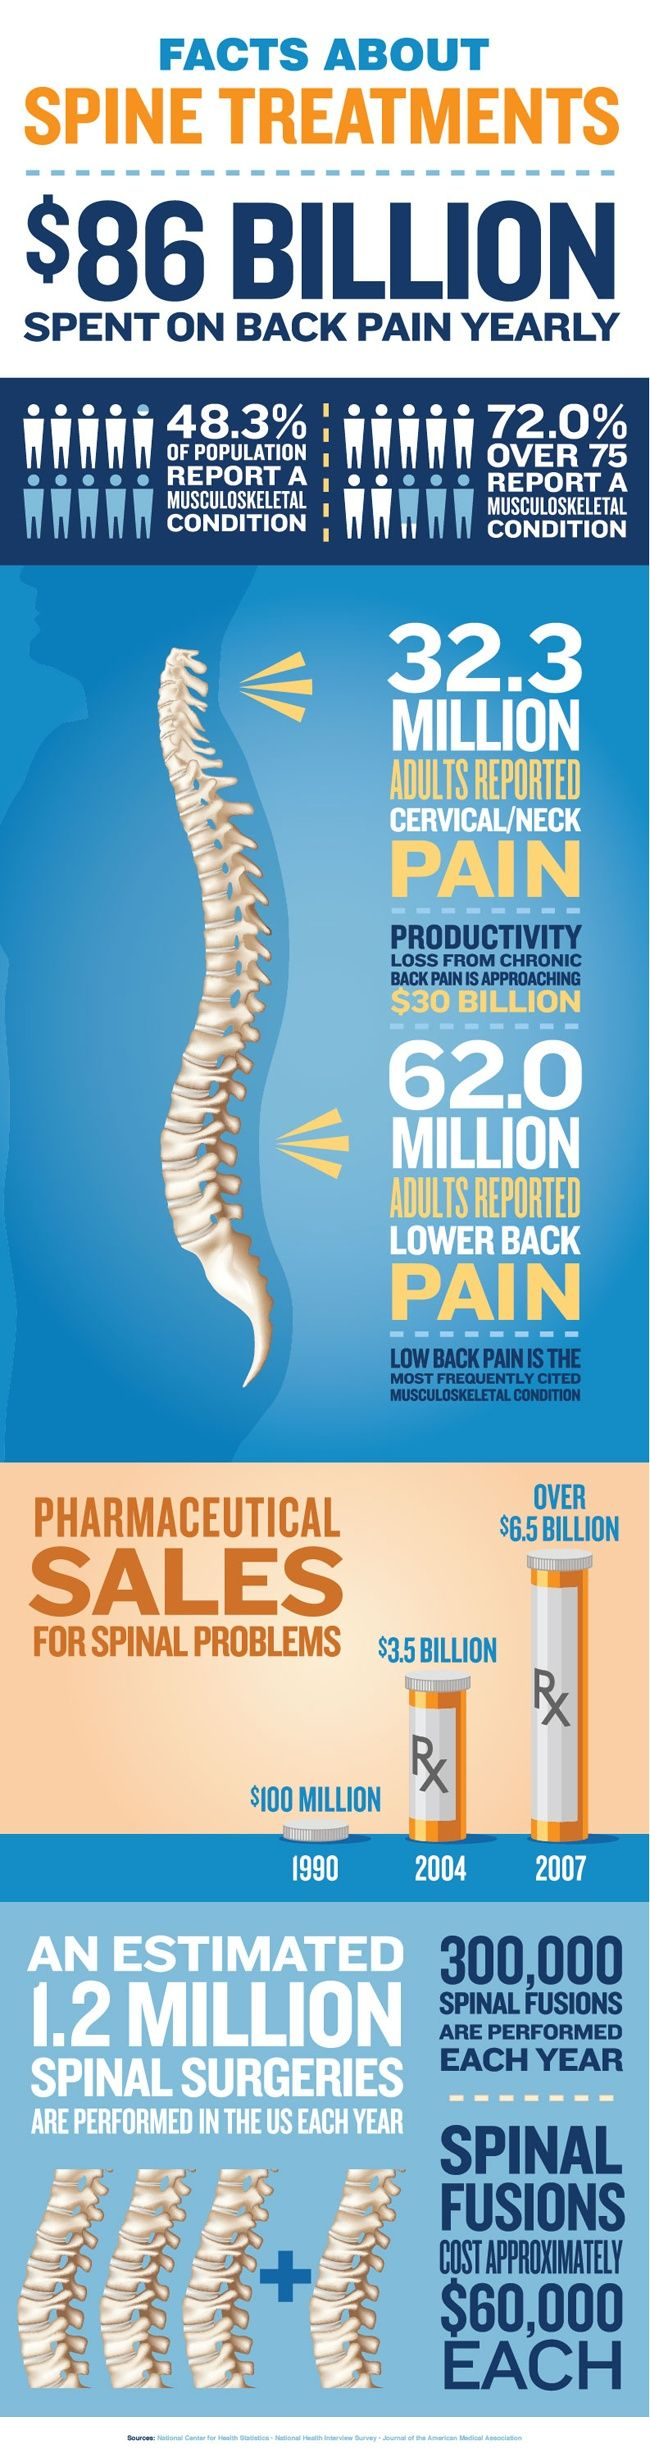 Bet you didn't know these unbelievable facts about the outrageous costs of treating back pain in the US! Doesn't proactive, preventative chiropractic care make more sense than drugs and surgery?  t